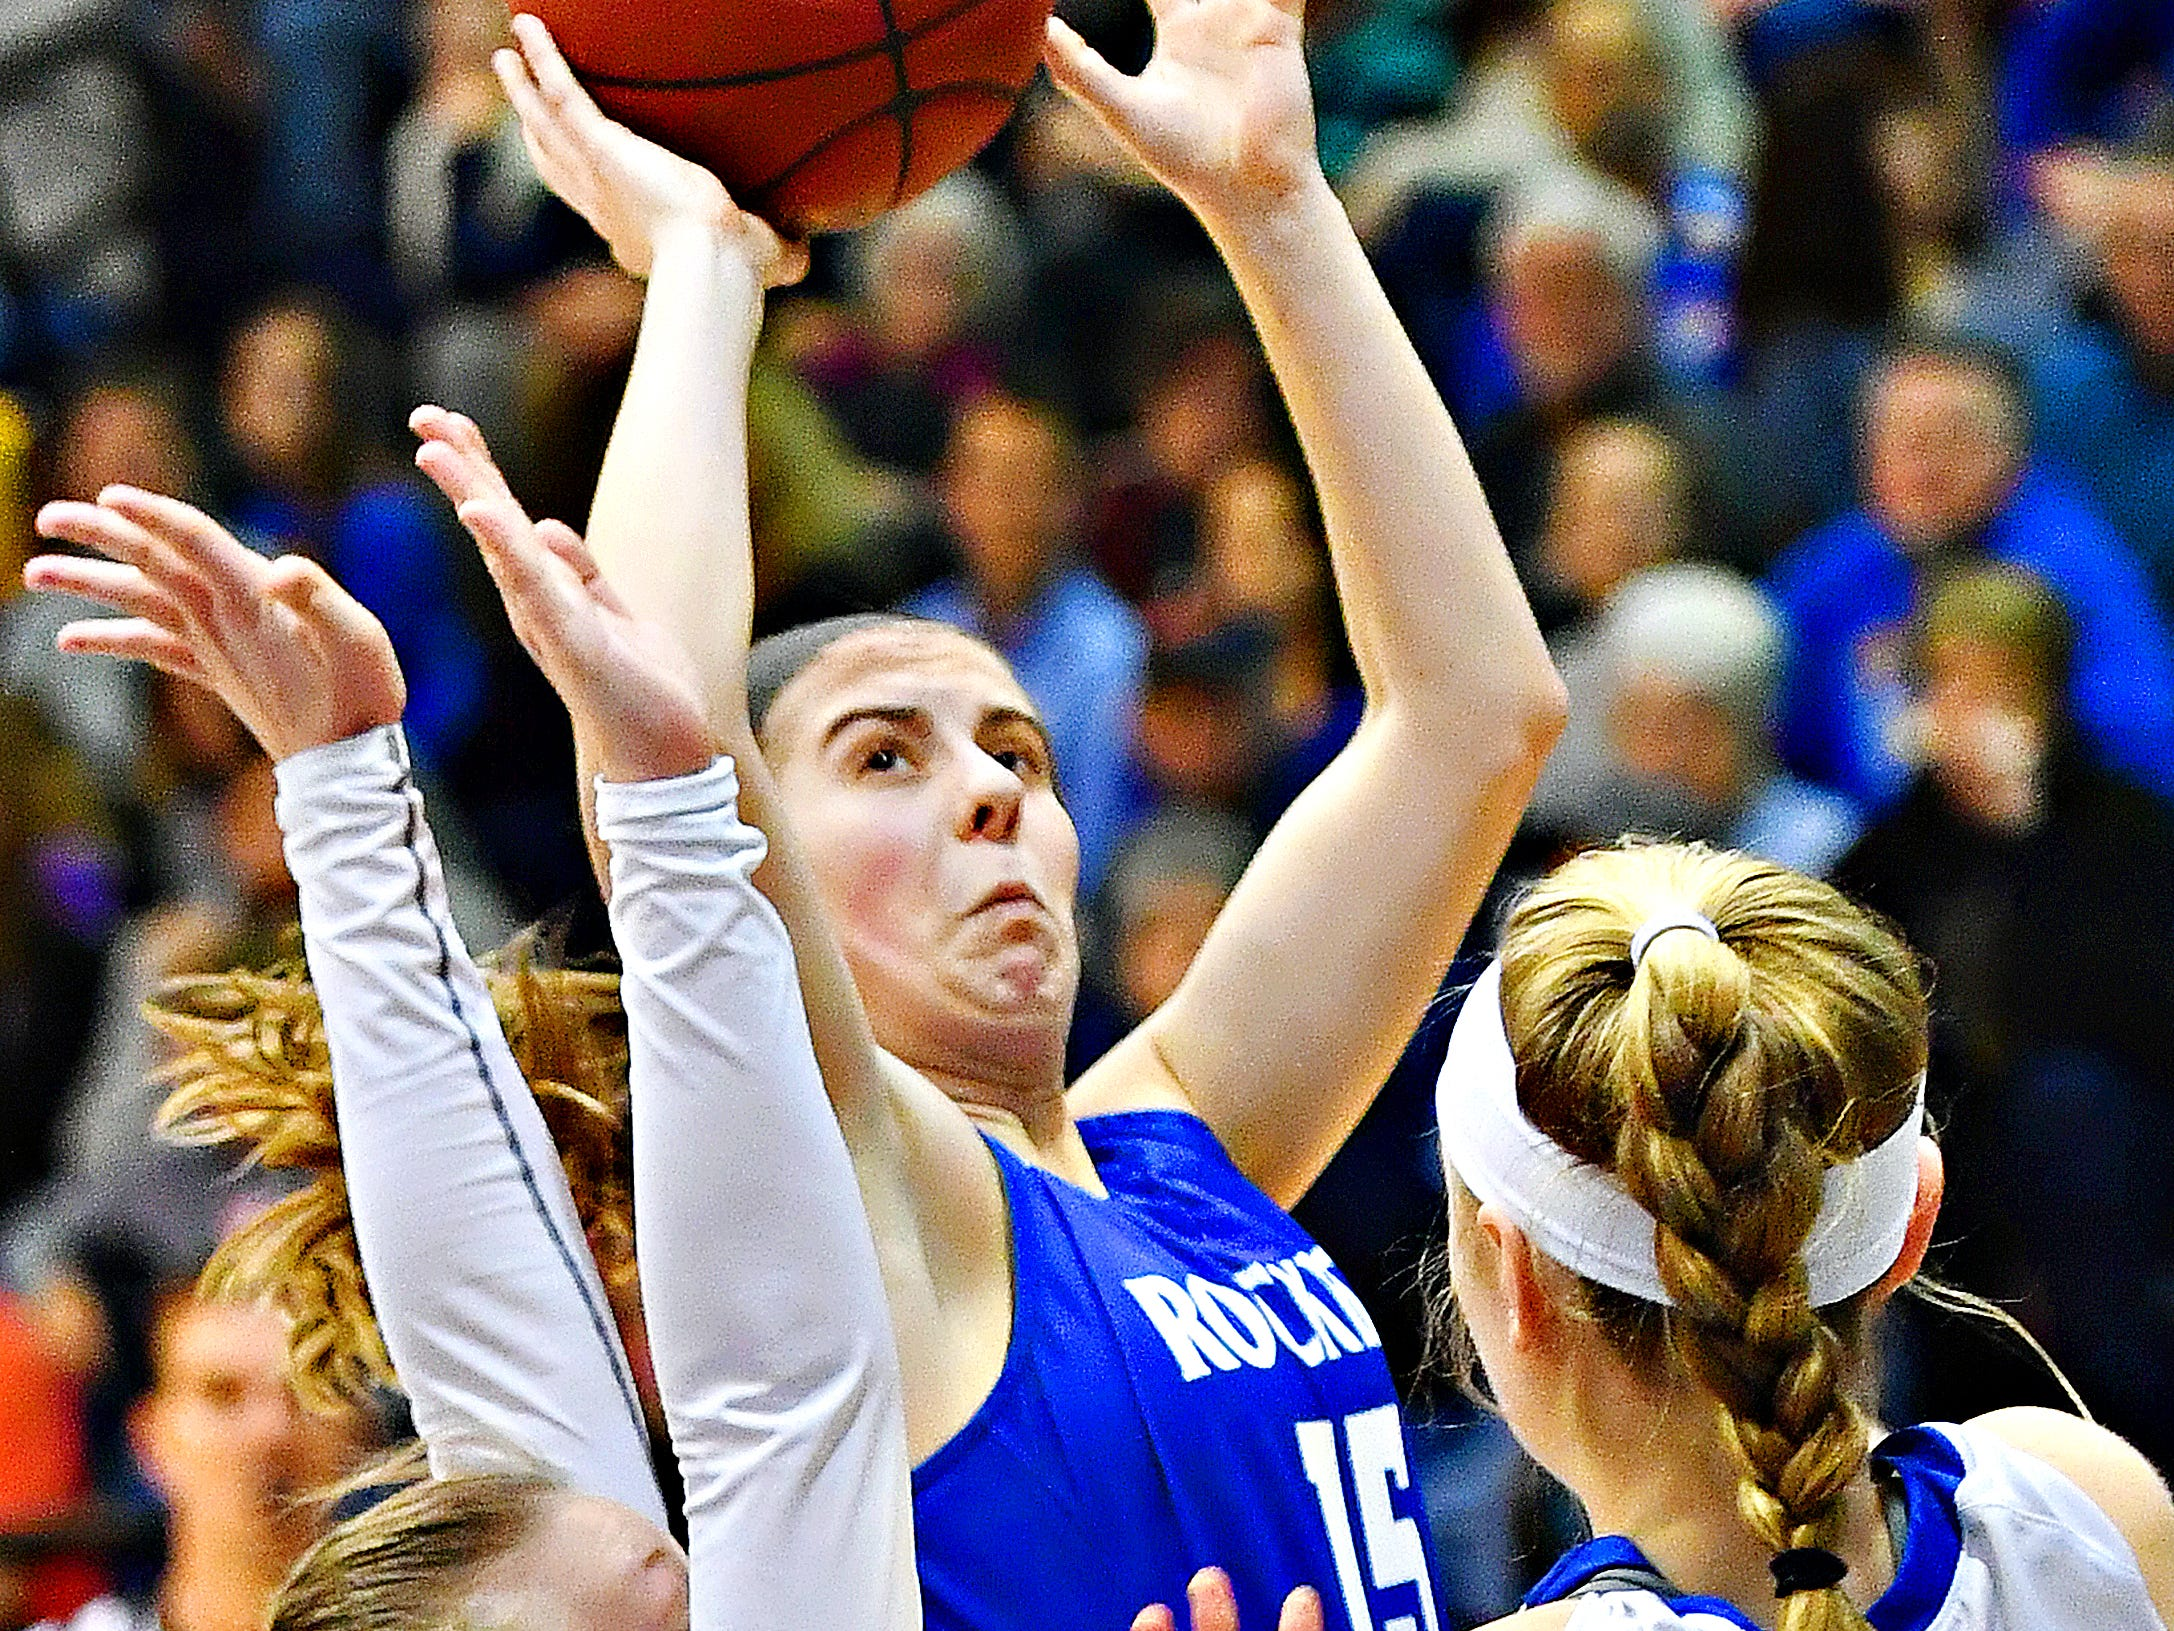 Spring Grove's Lexi Hoffman, back, lines up her shot while Kennard-Dale defends during York-Adams League girls' basketball quarterfinal action at Dallastown Area High School in York Township, Friday, Feb. 8, 2019. Spring Grove would win the game 47-38. Dawn J. Sagert photo